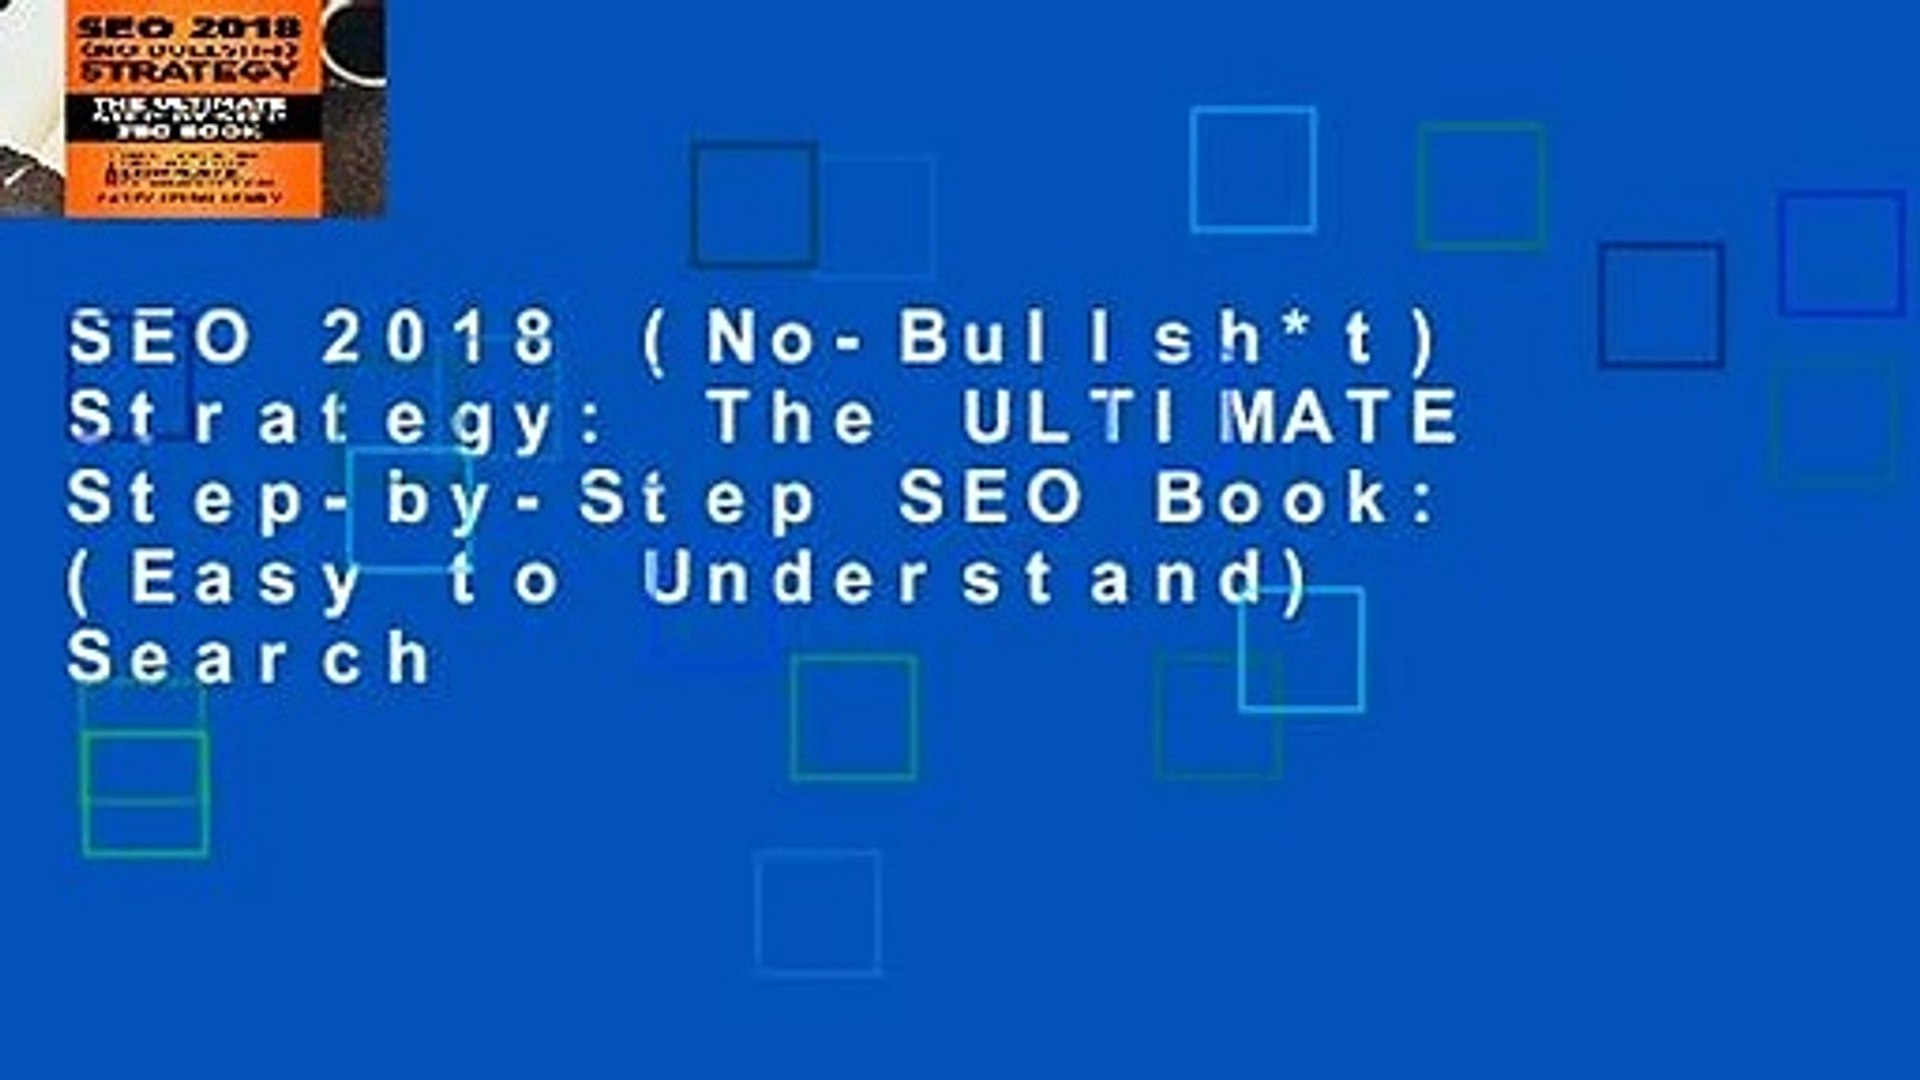 SEO 2018 (No-Bullsh*t) Strategy: The ULTIMATE Step-by-Step SEO Book: (Easy to Understand) Search